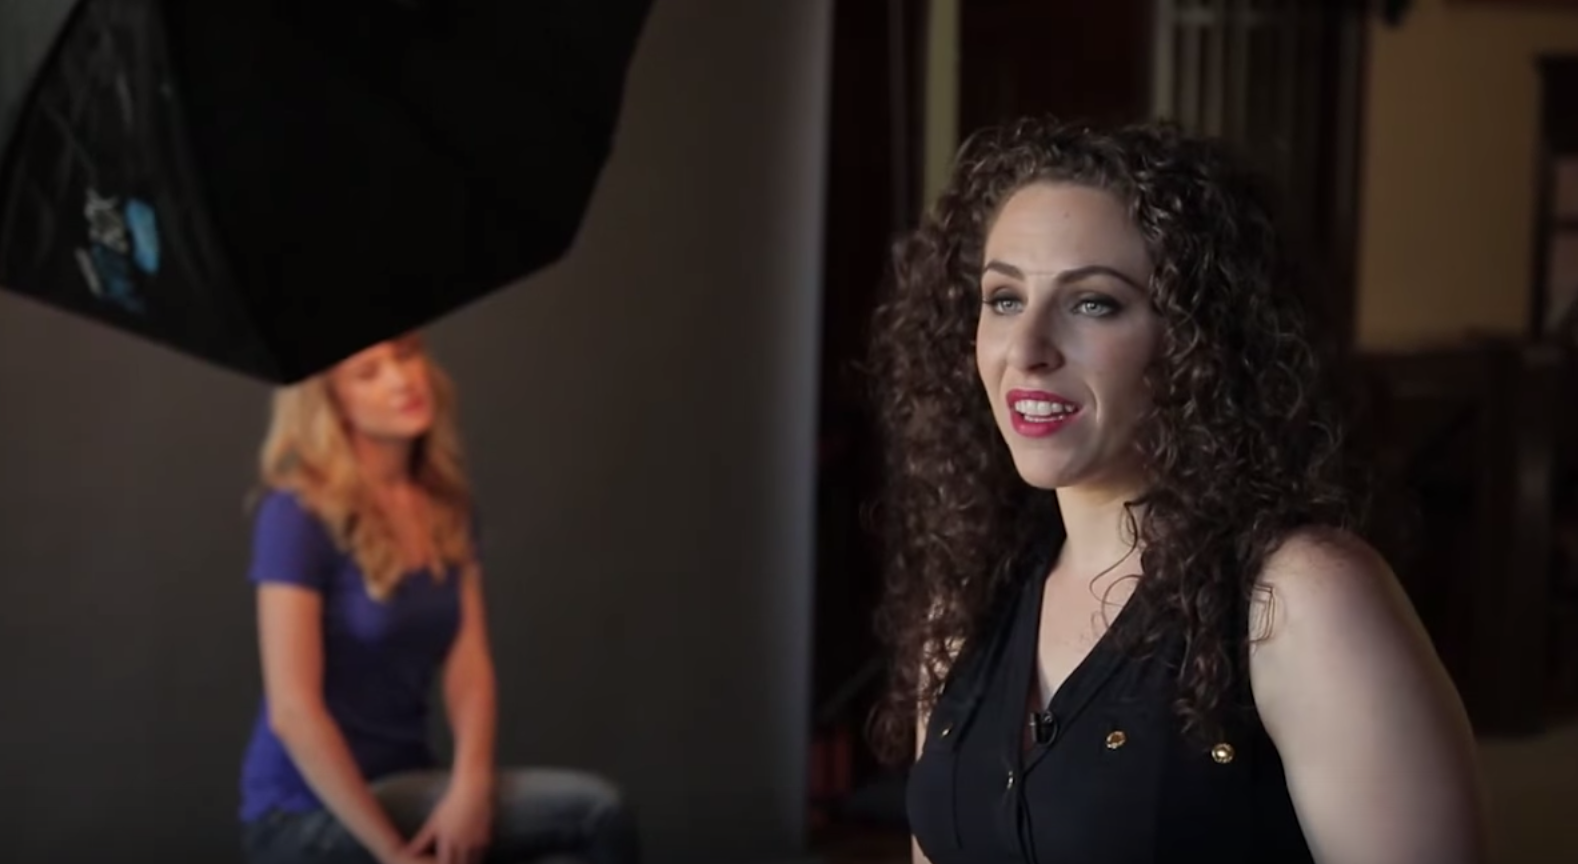 Linday Adler's Tips For Making Portrait Photography Subjects More Comfortable